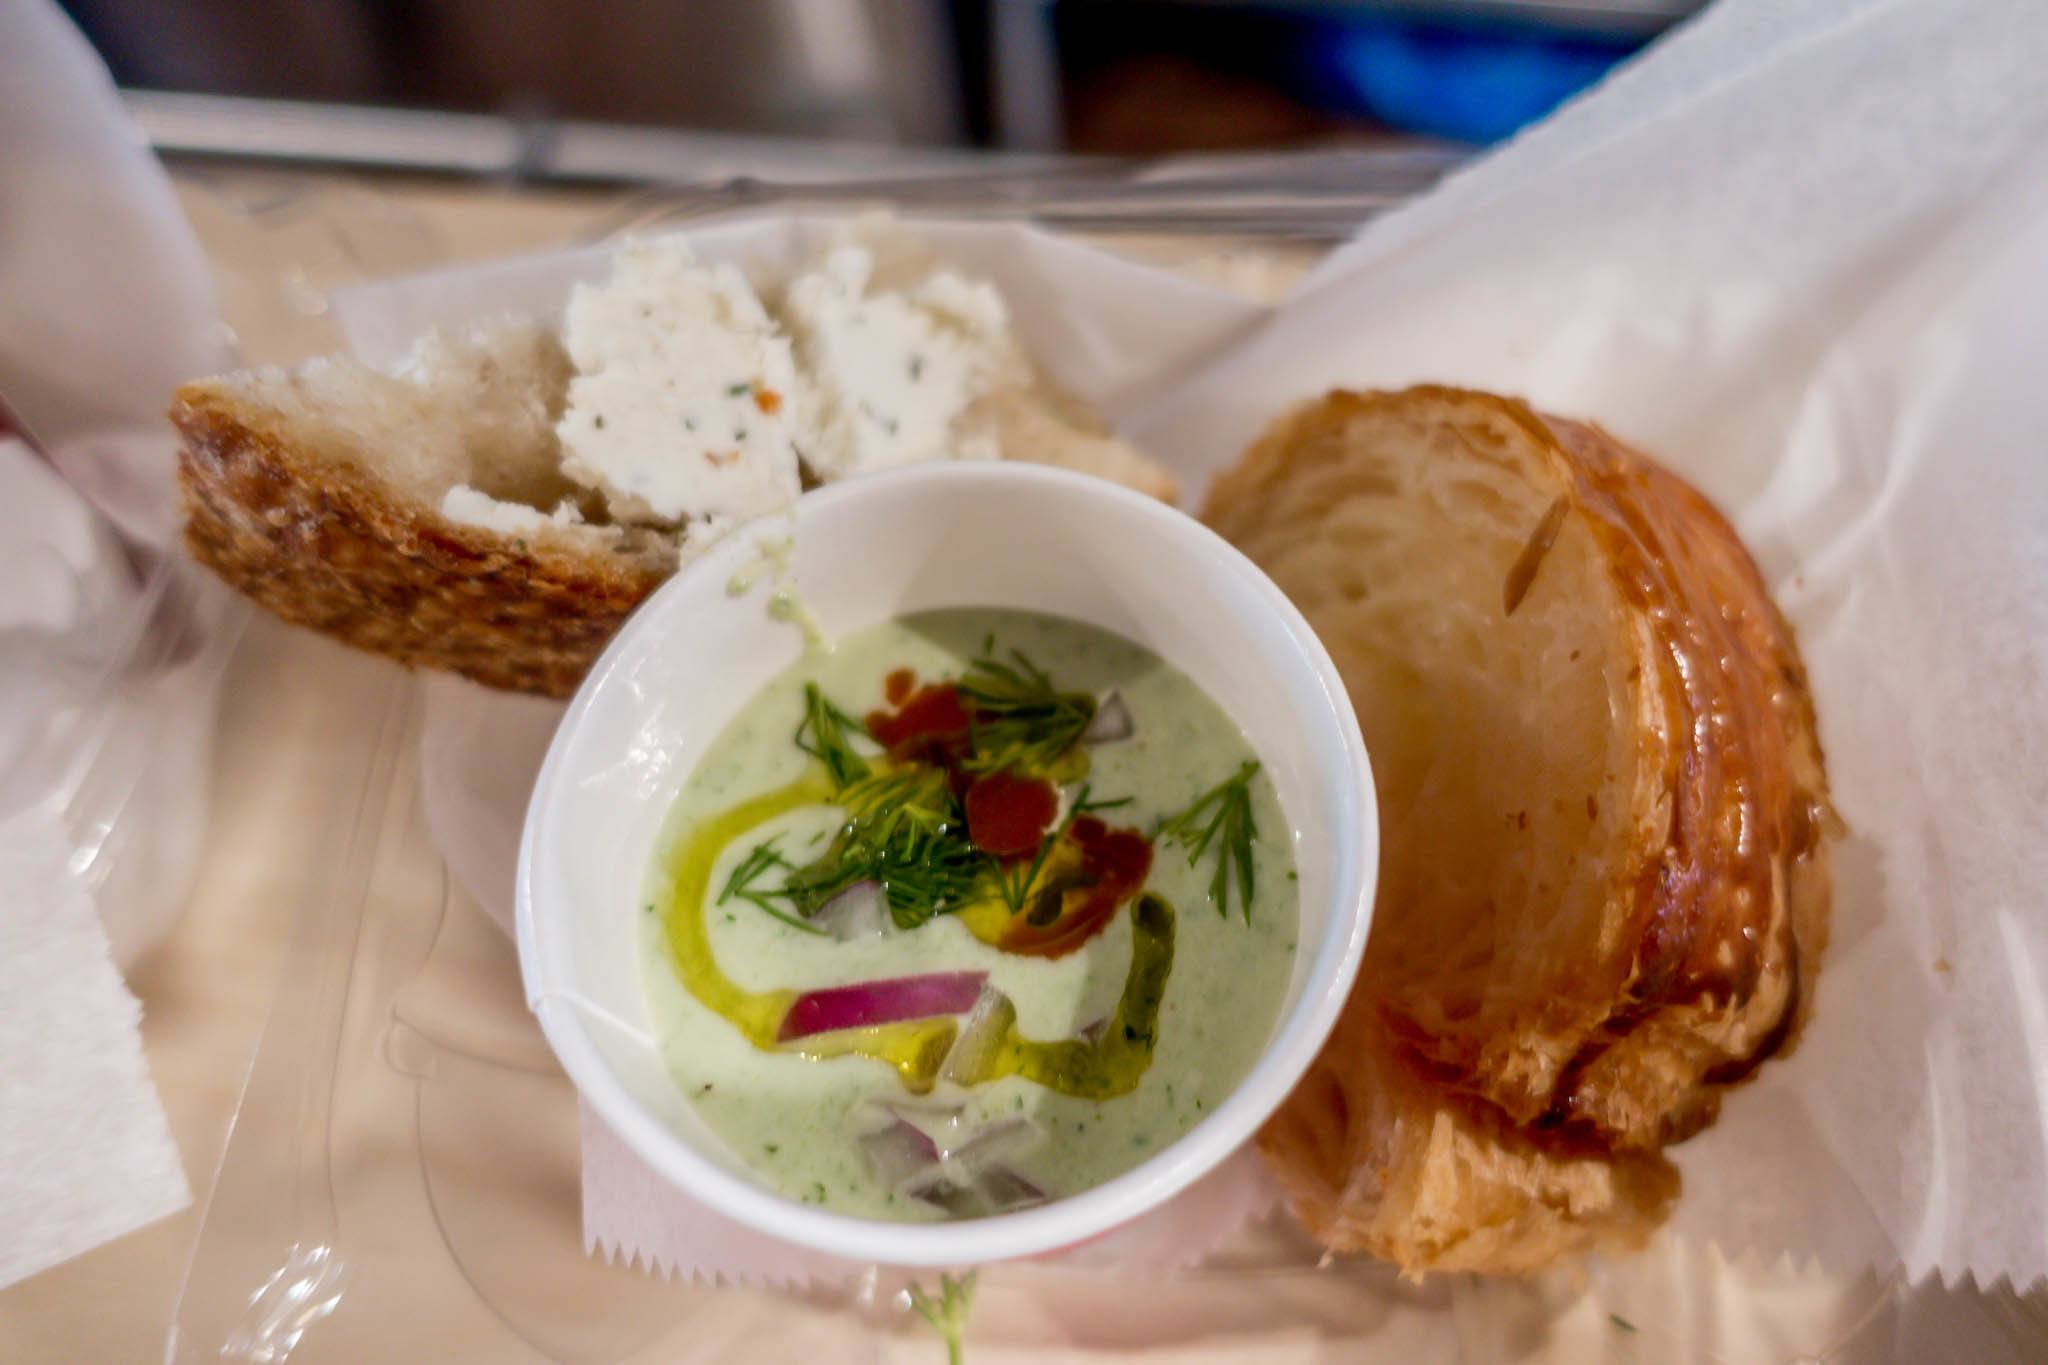 Cup of cucumber soup and bread